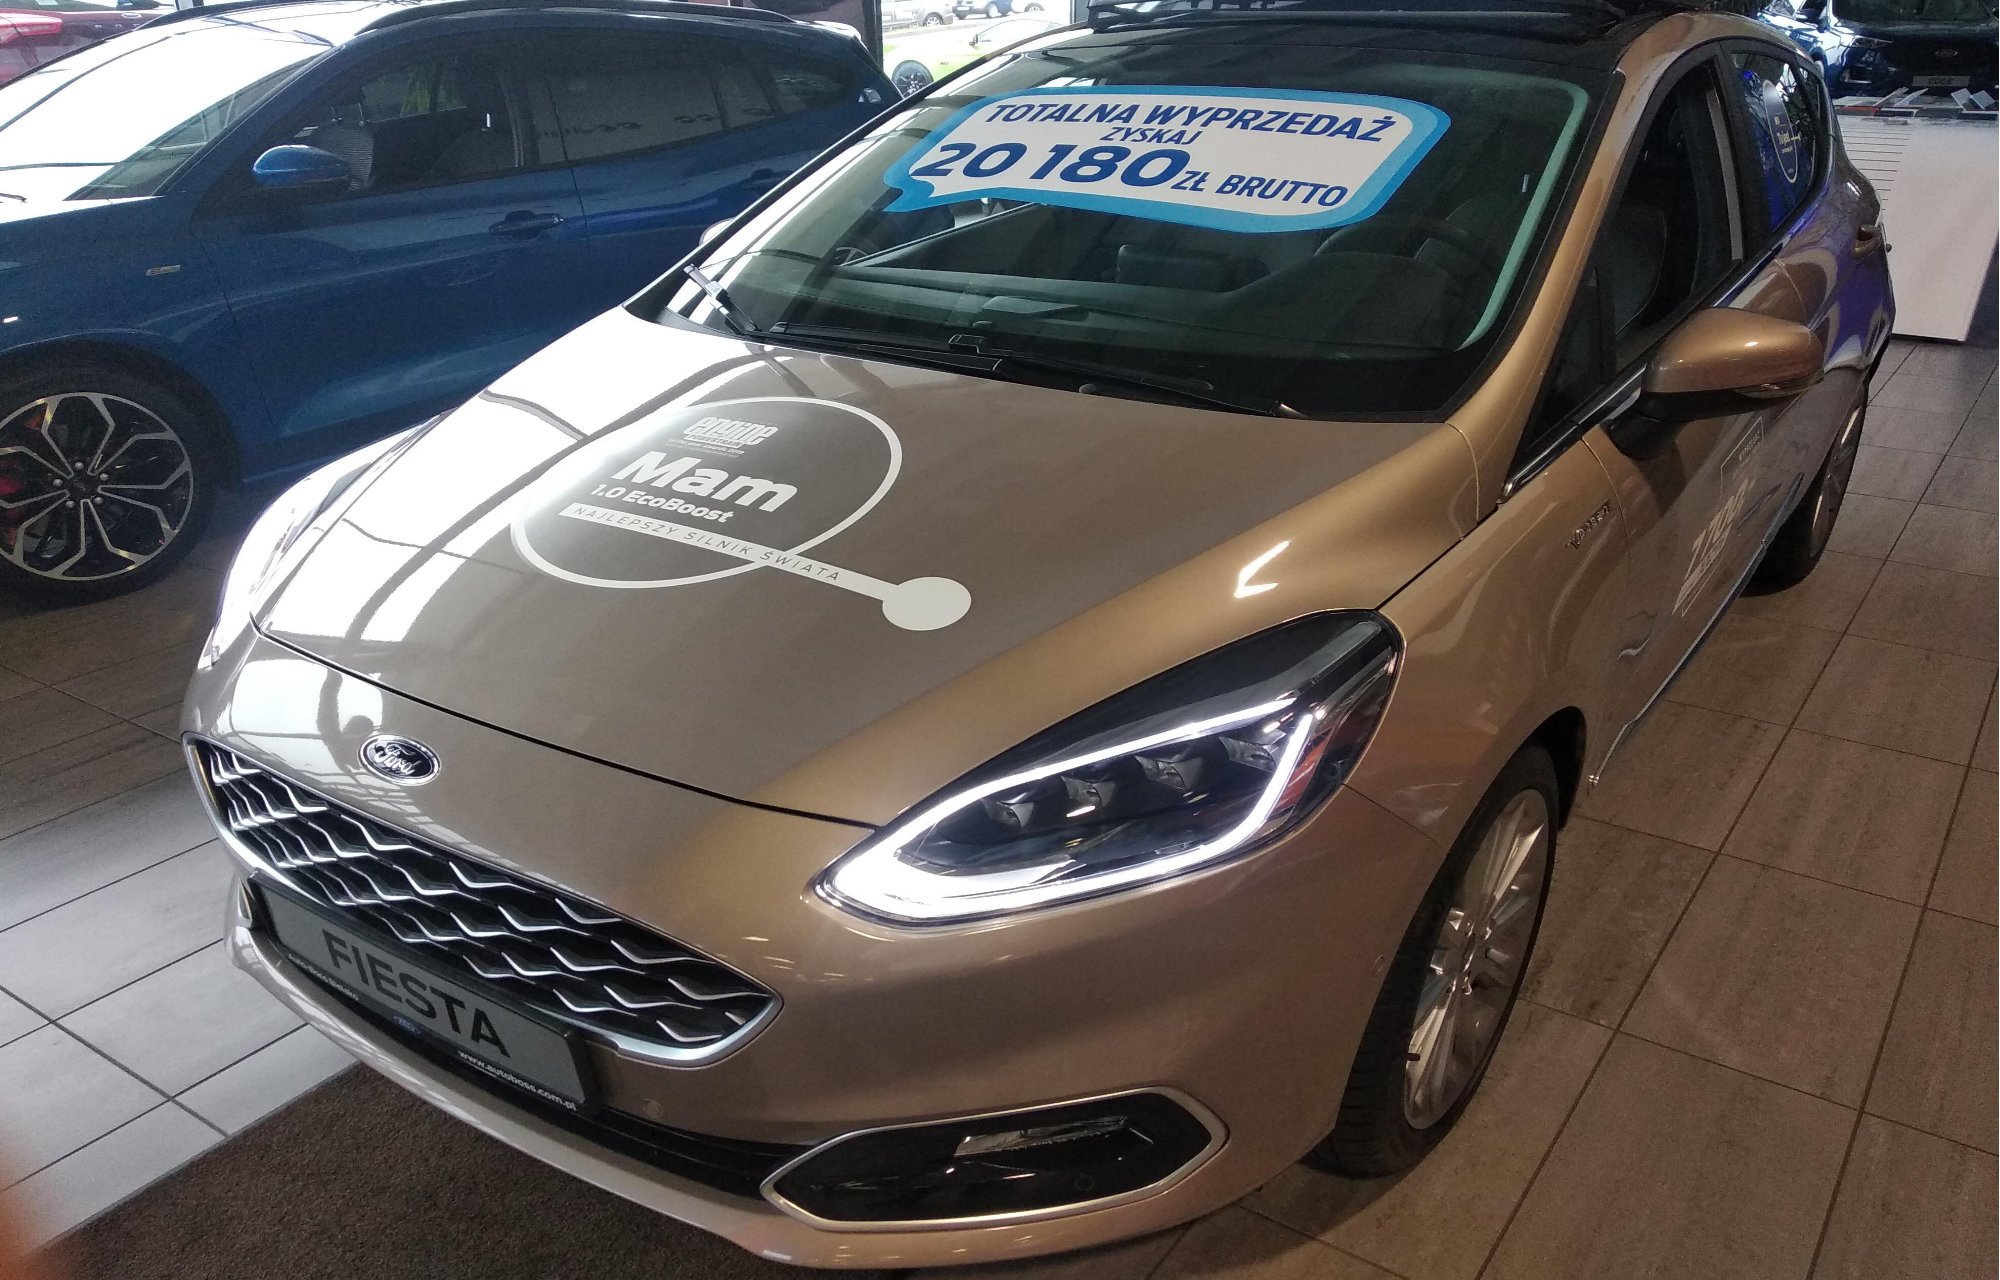 Ford Fiesta Vignale 1.0 EcoBoost 125 KM